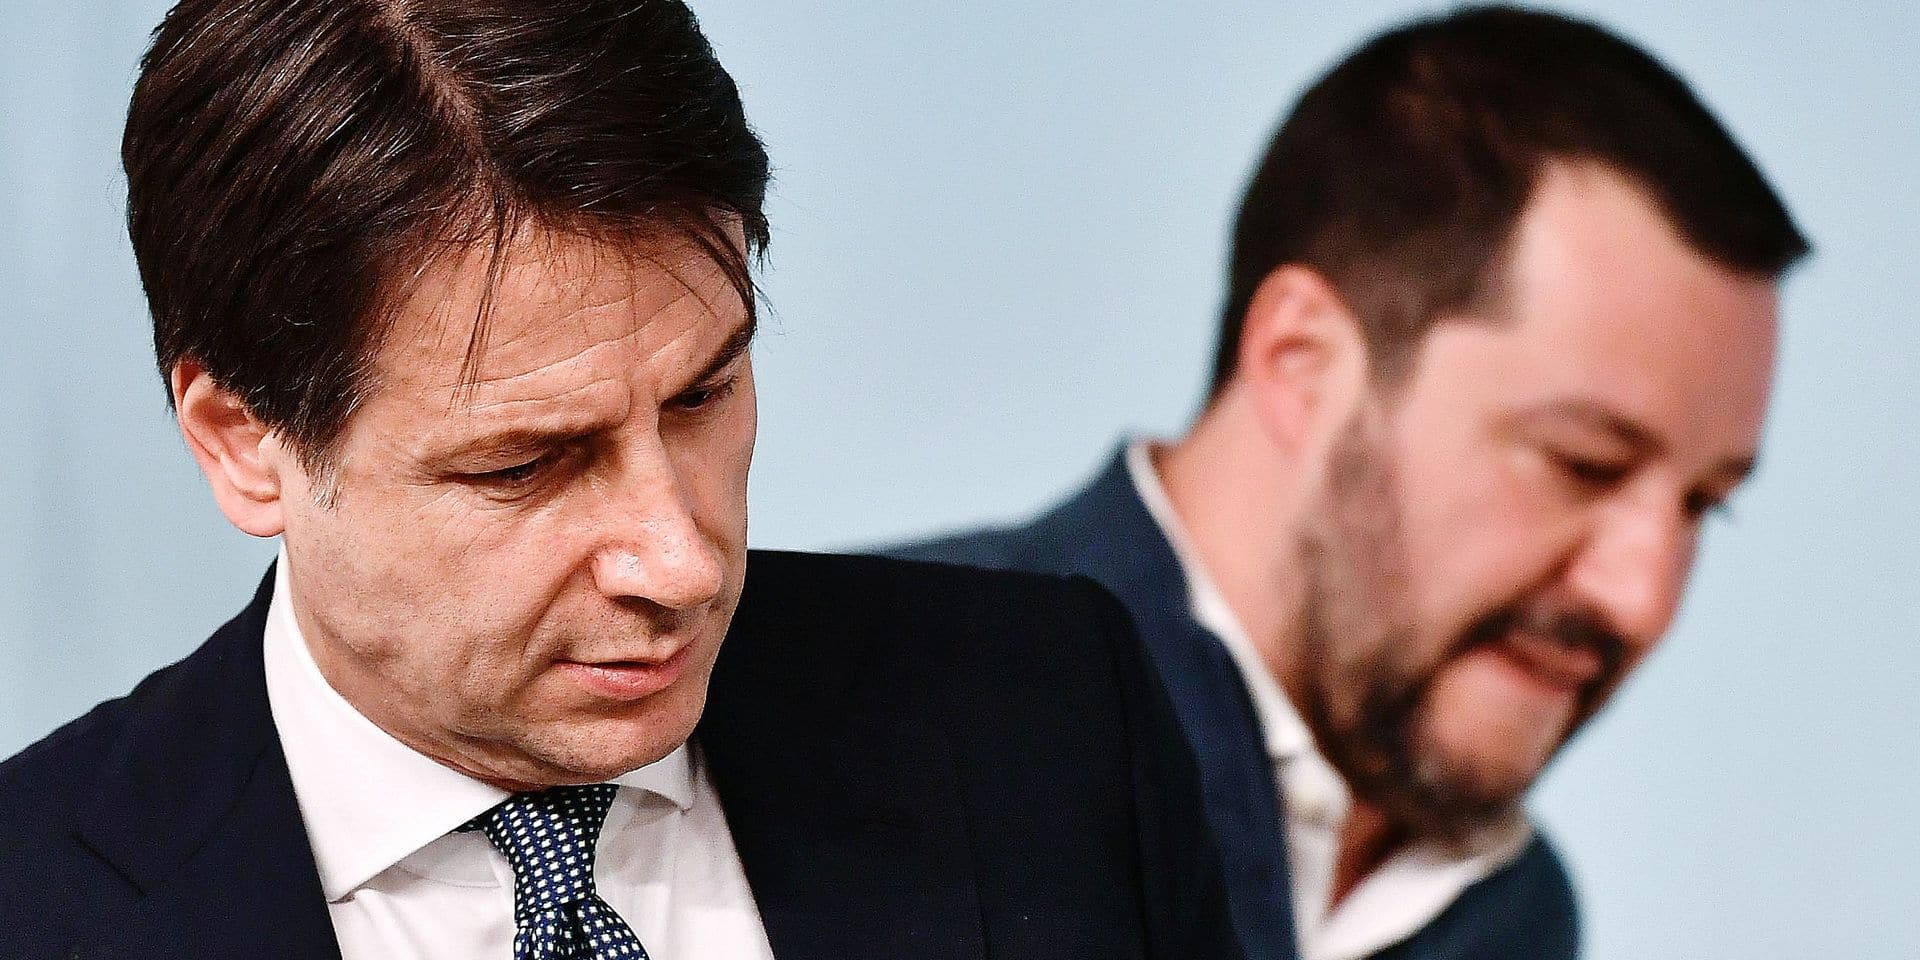 (FILES) In this file photograph taken on January 14, 2019, Italy's Prime Minister Giuseppe Conte (L) and Italy's Interior Minister and deputy PM Matteo Salvini attend a press conference at Palazzo Chigi in Rome. - Matteo Salvini's summer 'Beach Tour', billed as a chance to woo voters with a view to possibly forcing early elections, got off to a bad start on August 7, 2019, as Italy's populist government wobbled. (Photo by Vincenzo PINTO / AFP)